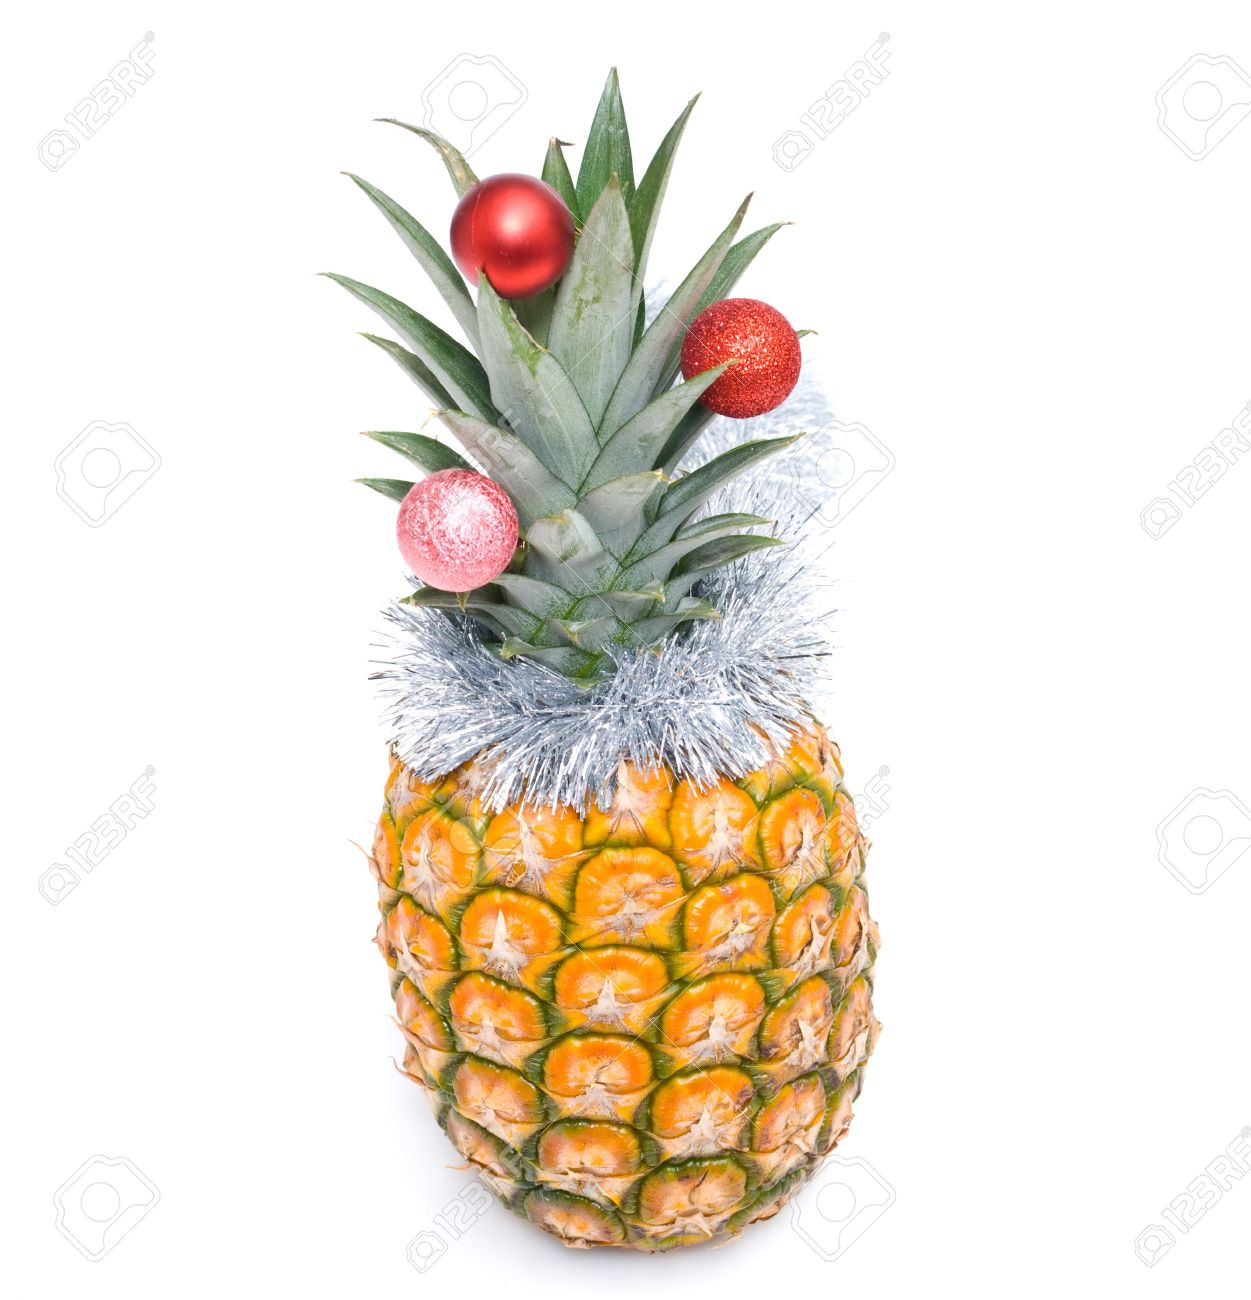 Christmas Pineapple.Fresh Pineapple Decorated Christmas Toys On A White Background